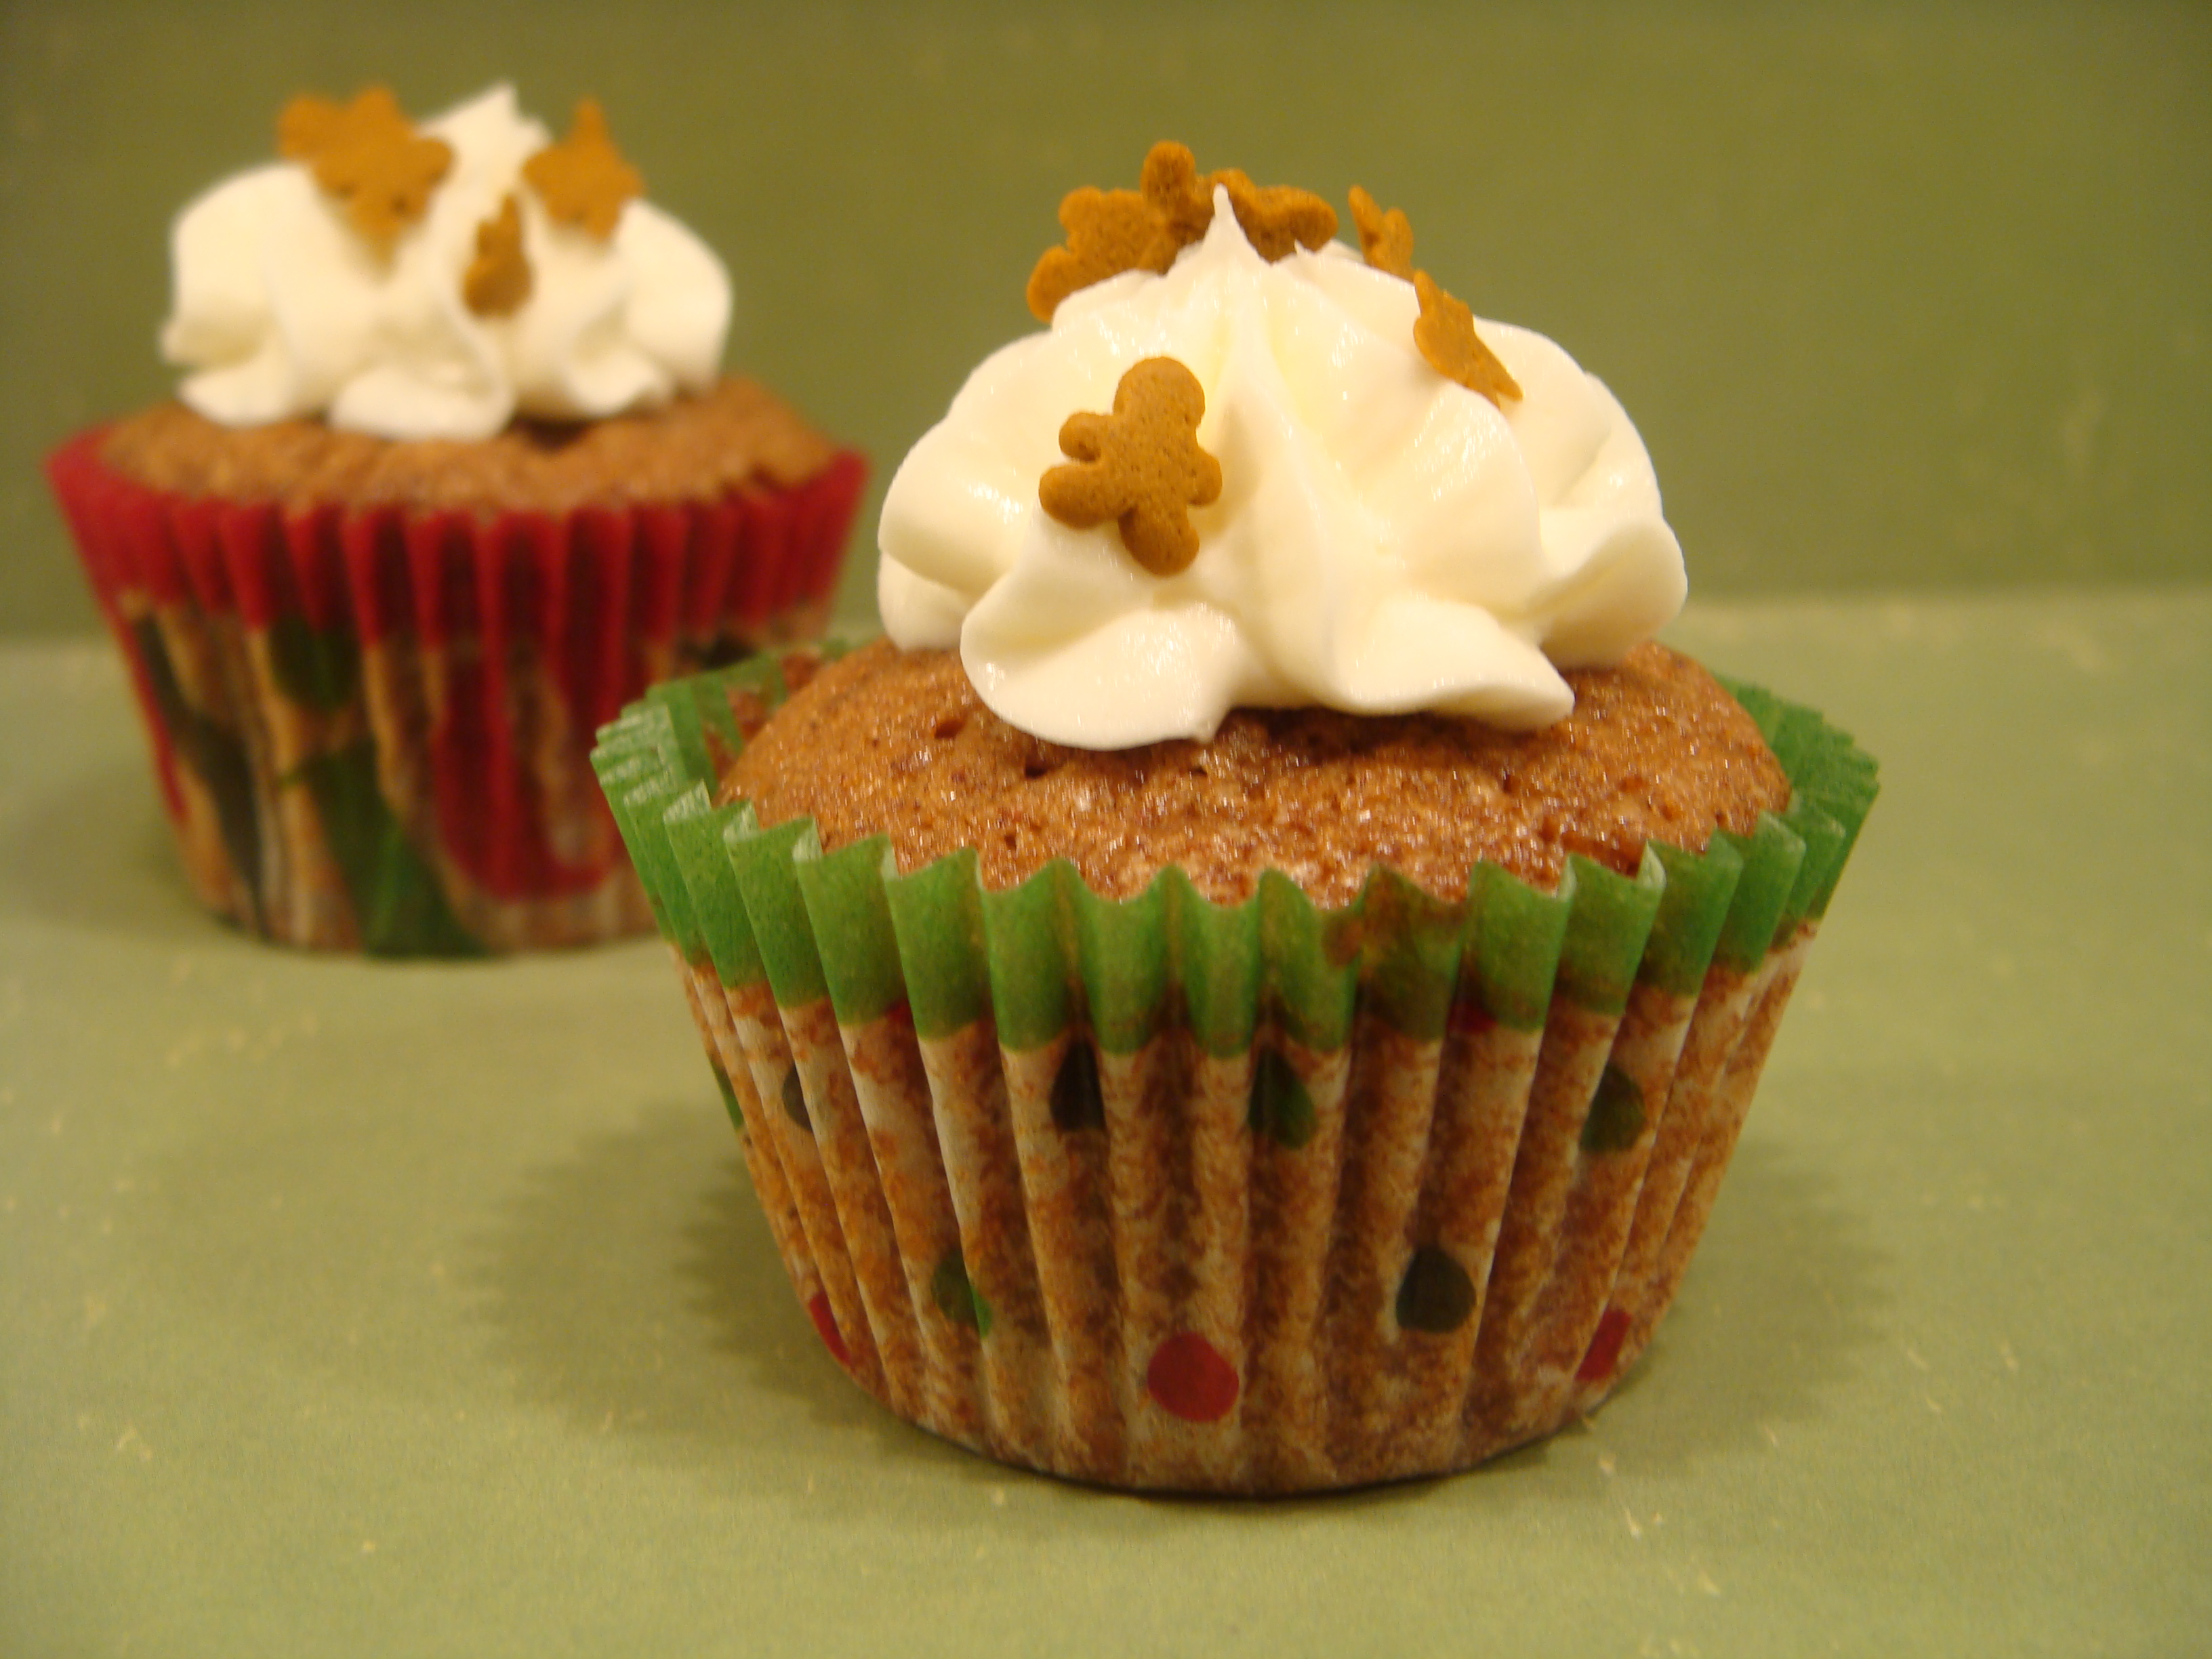 File:Two gingerbread mini cupcakes, December 2009.jpg - Wikimedia ...